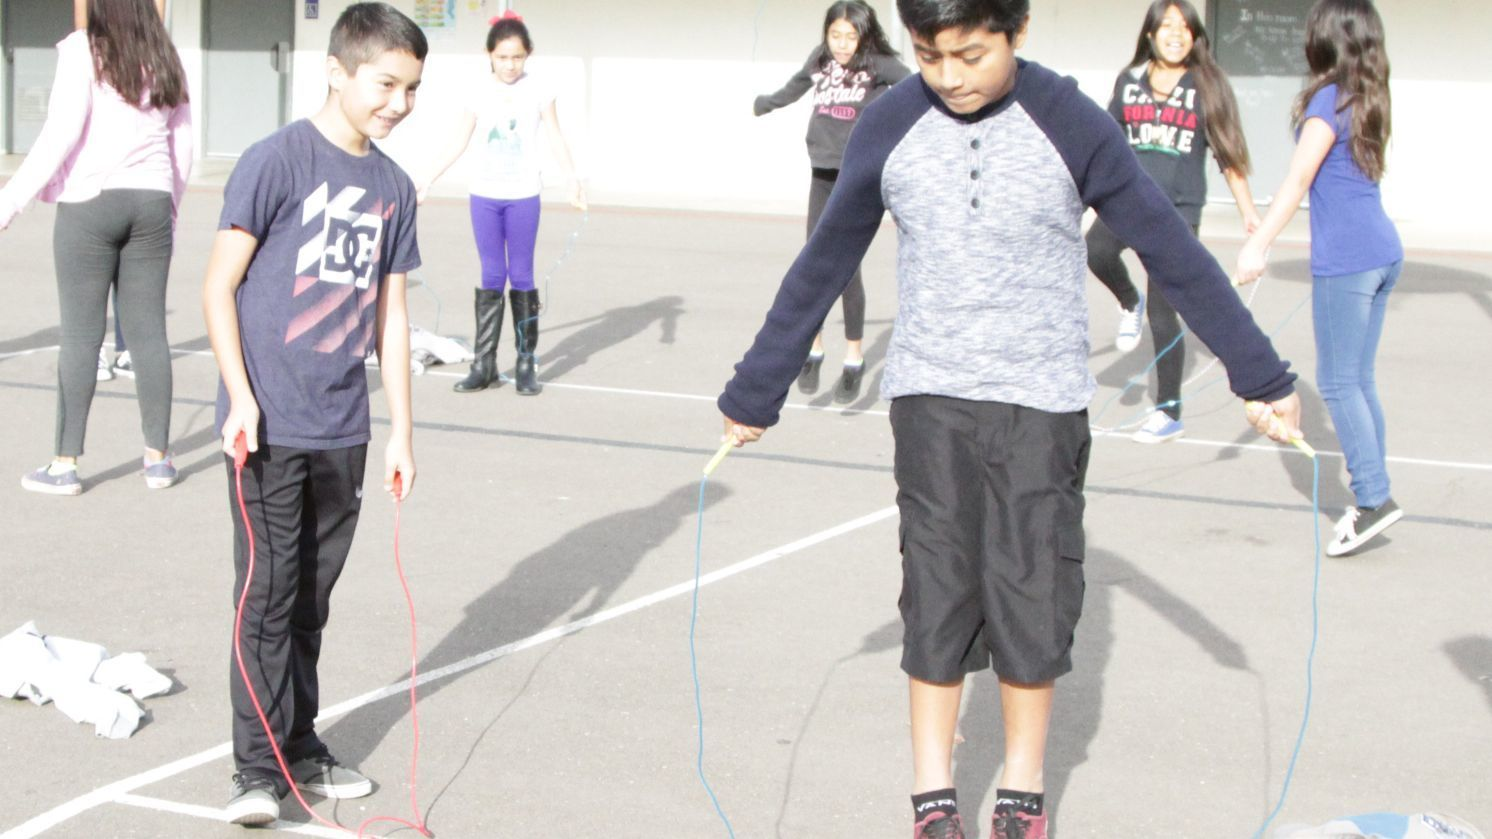 Ramona Elementary sixth-grader Carlos Sanchez watches as classmate Luis Bautista jumps rope.